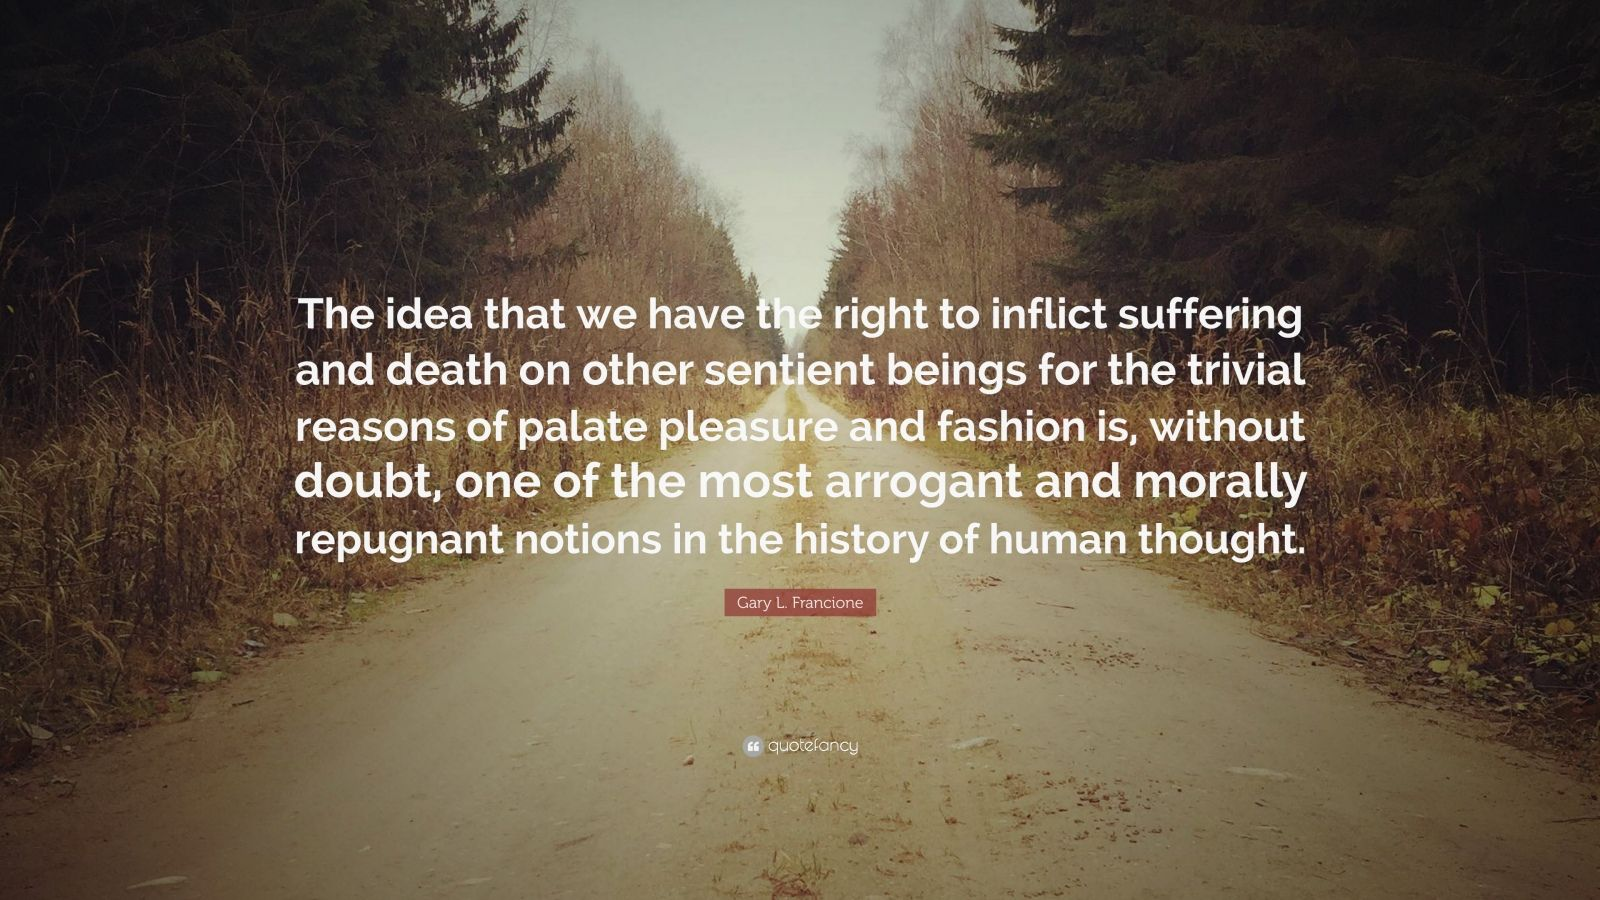 "Gary L. Francione Quote: ""The idea that we have the right to inflict suffering and death on other sentient beings for the trivial reasons of palate pleasure and fashion is, without doubt, one of the most arrogant and morally repugnant notions in the history of human thought."""